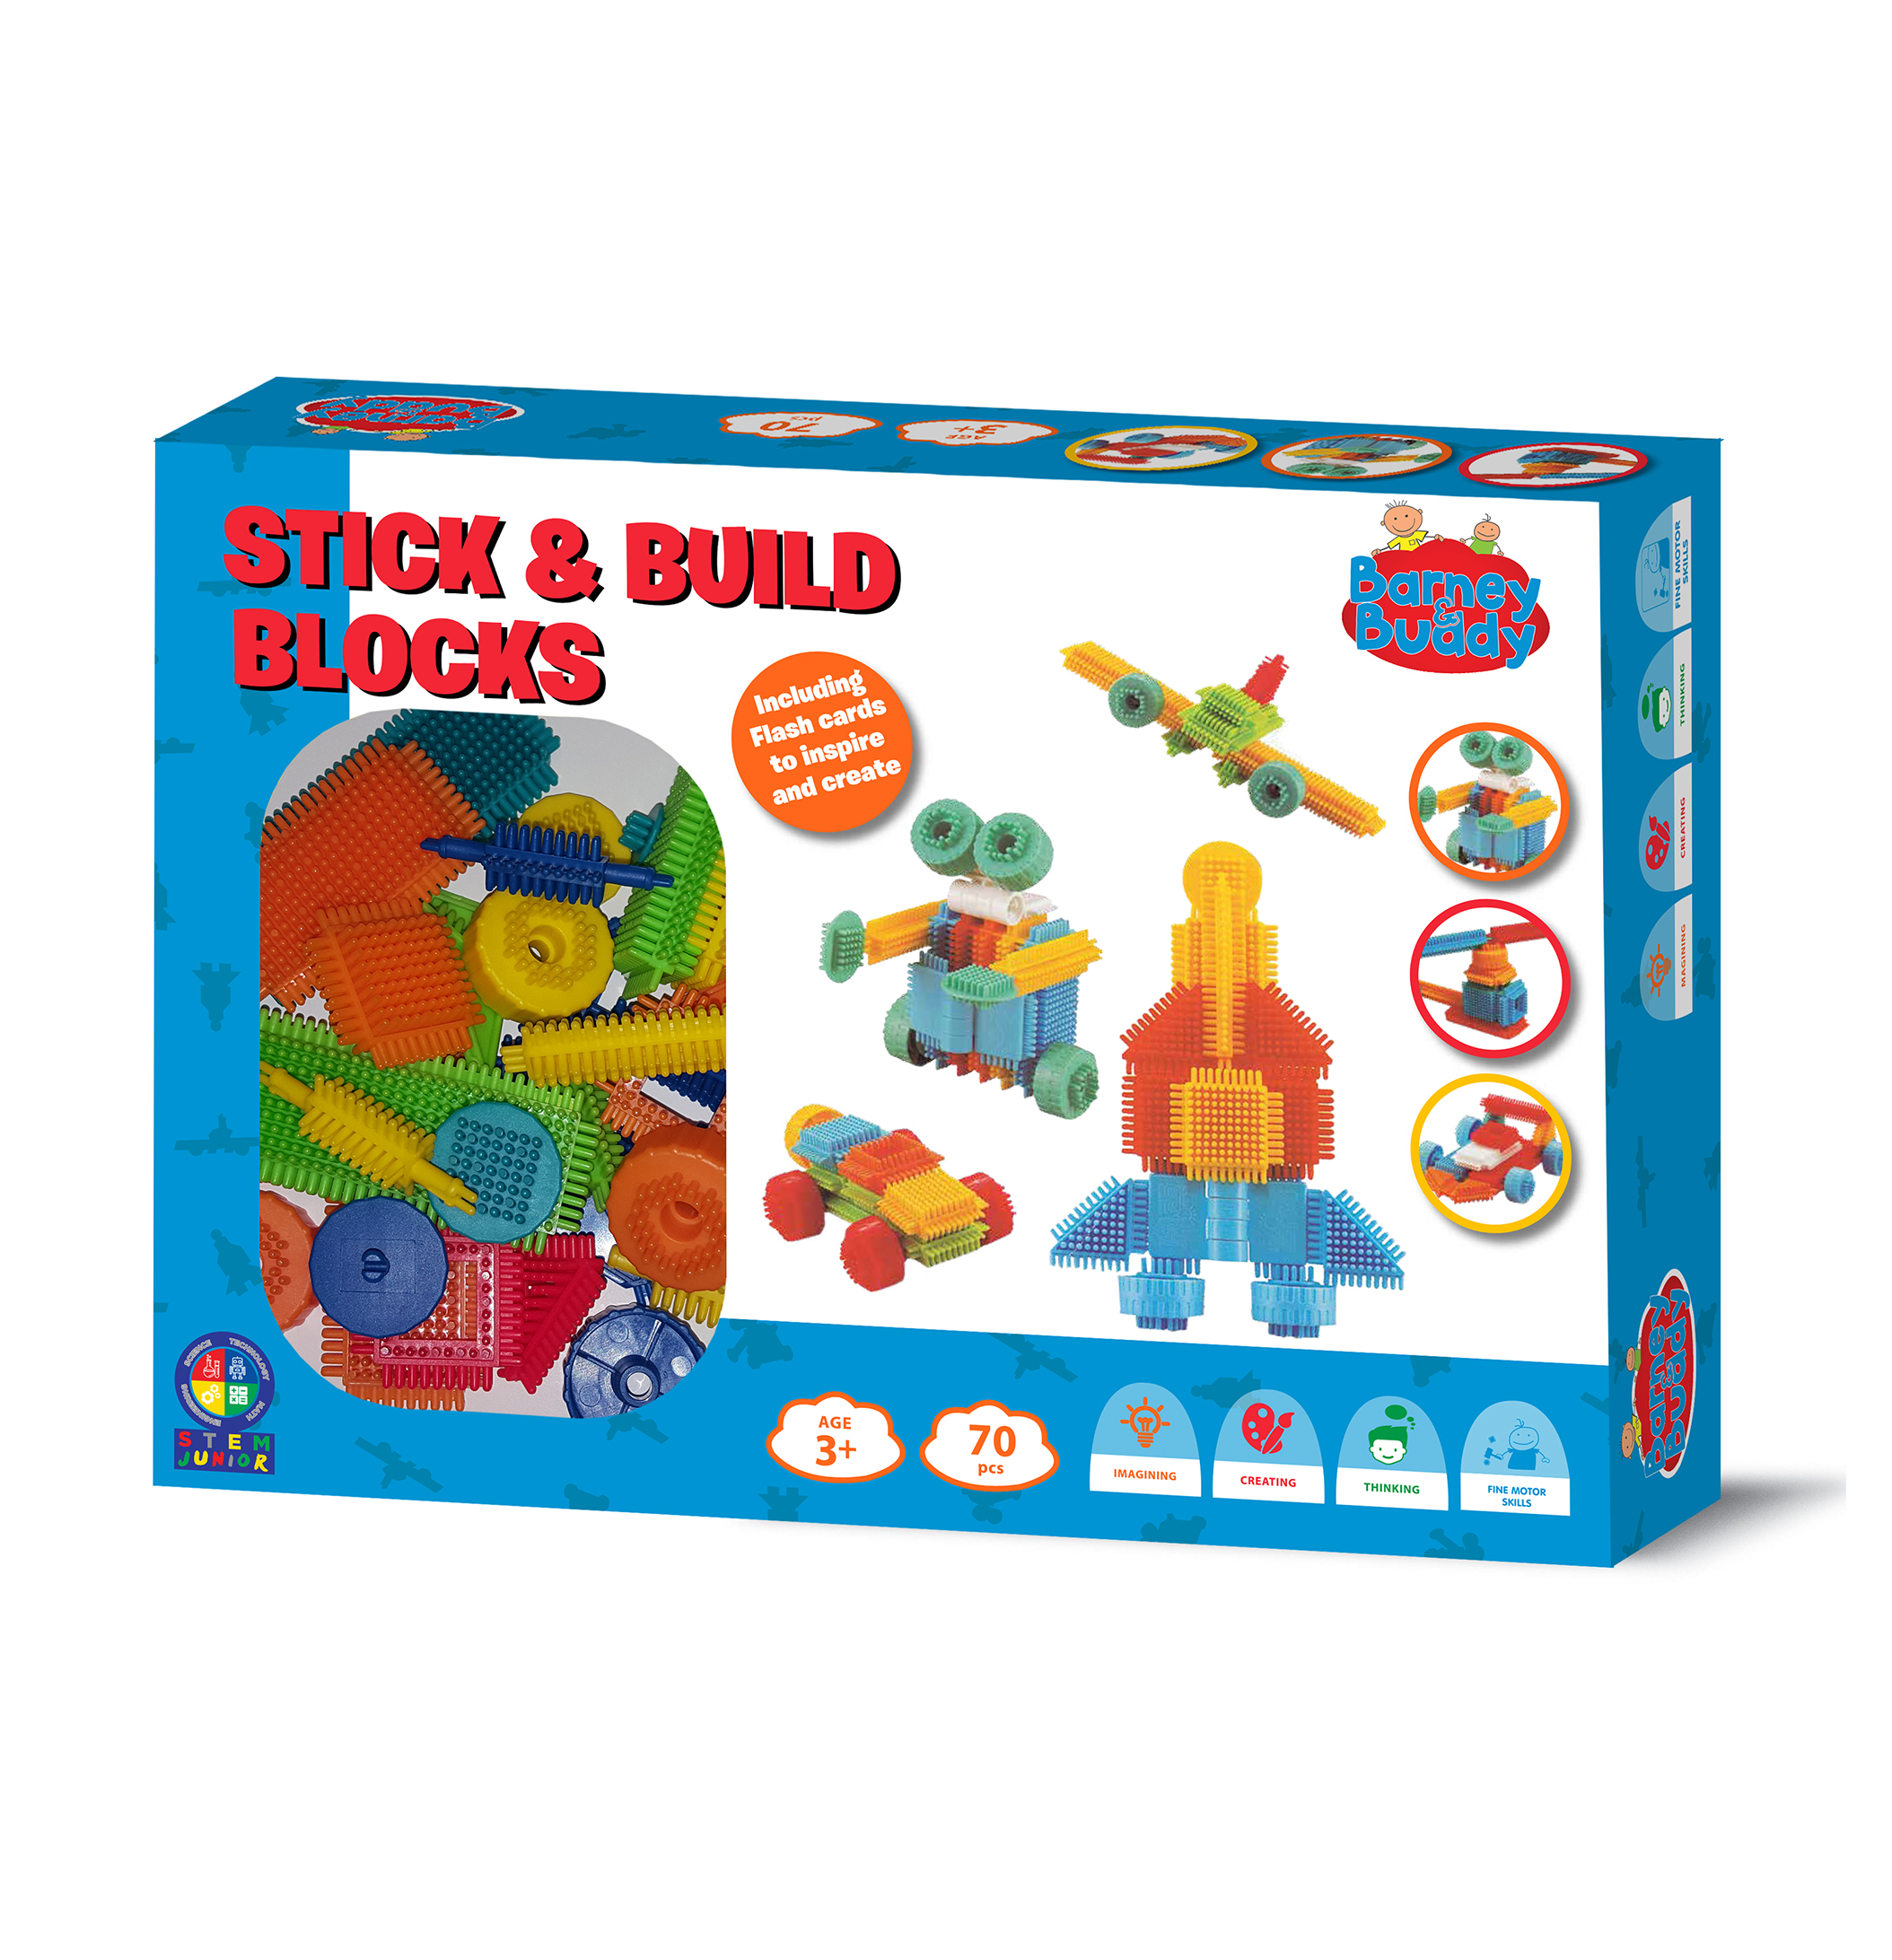 Stick & Build Blocks